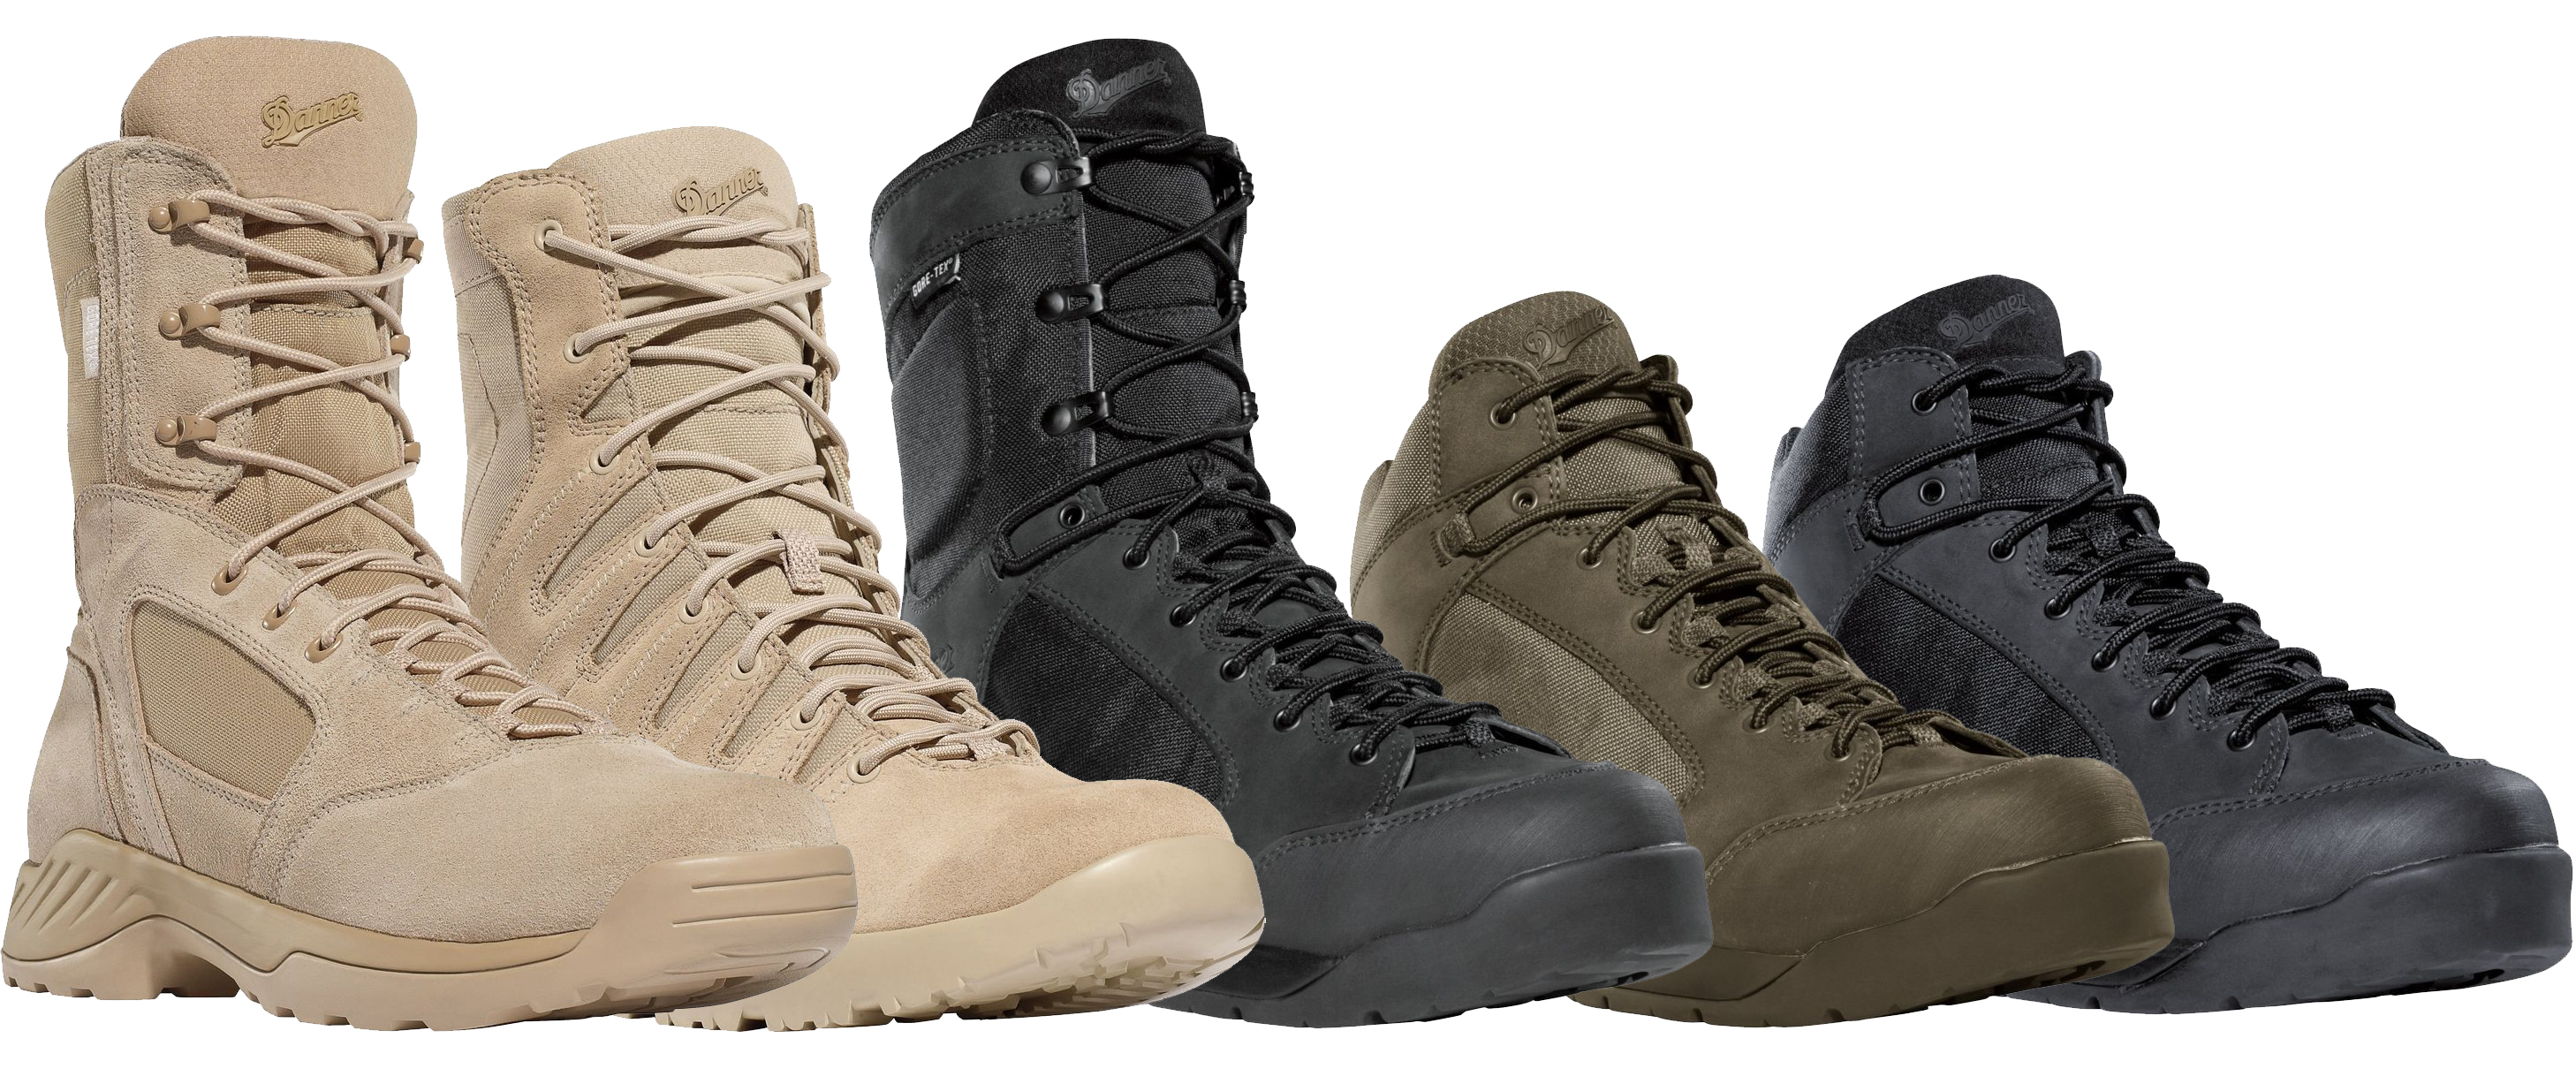 Danner 15402 15405 15407 15932 28055 Army Kinetic/DFA/Melee Boots ...